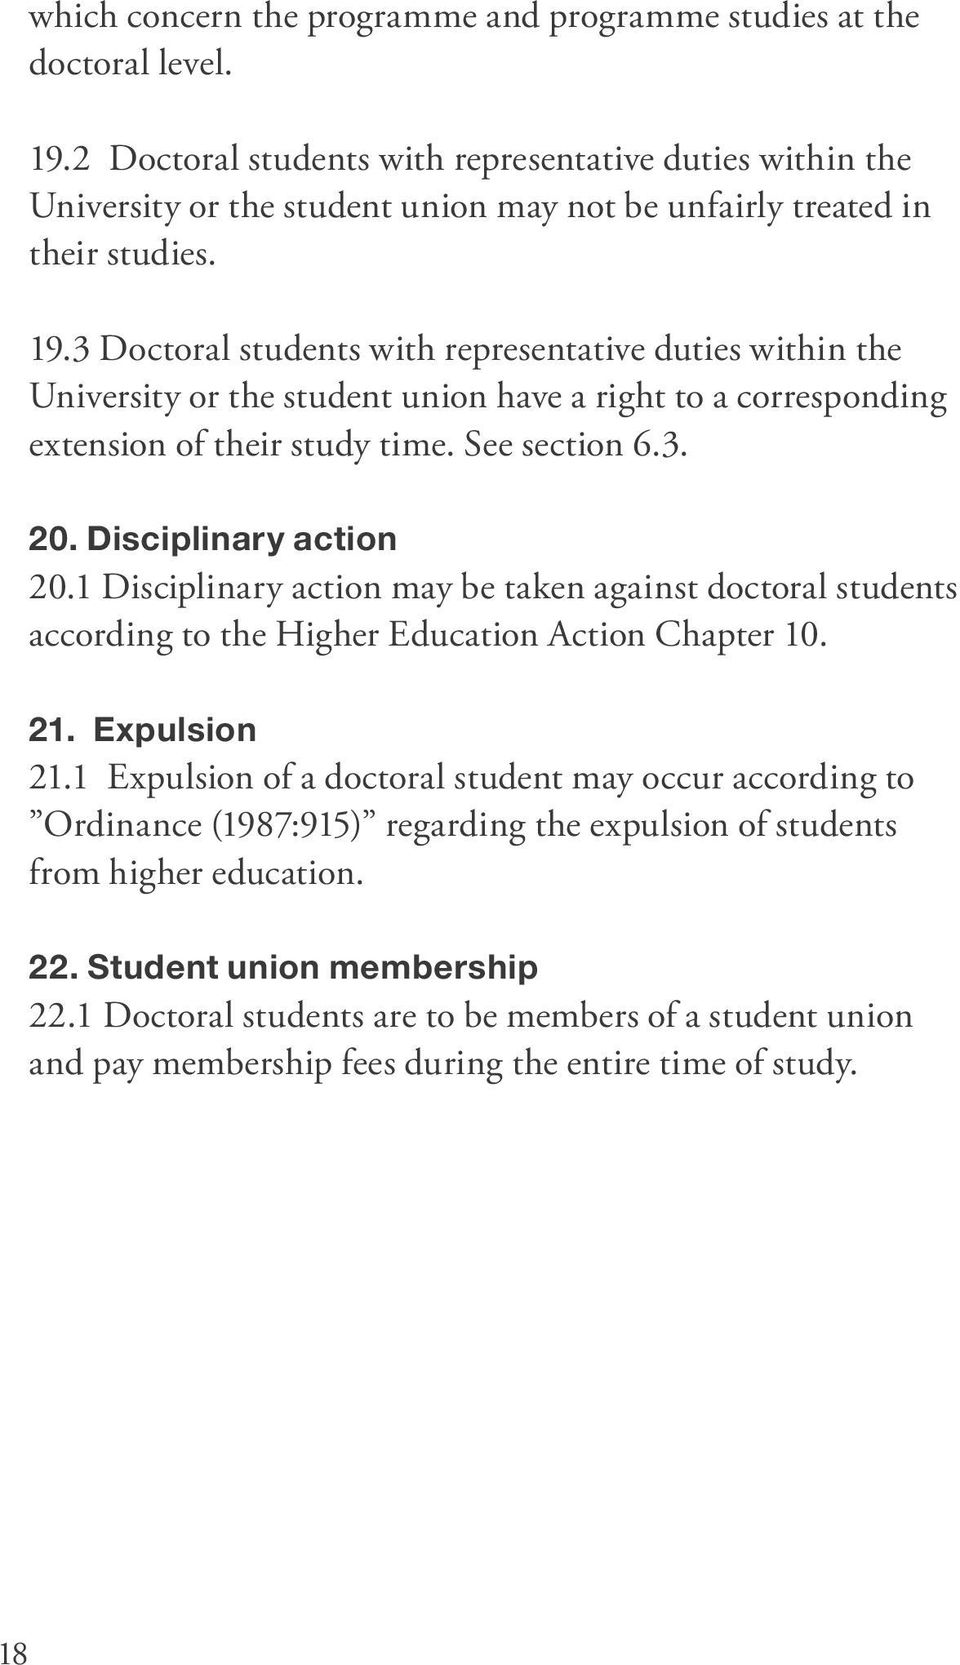 3 Doctoral students with representative duties within the University or the student union have a right to a corresponding extension of their study time. See section 6.3. 20. Disciplinary action 20.